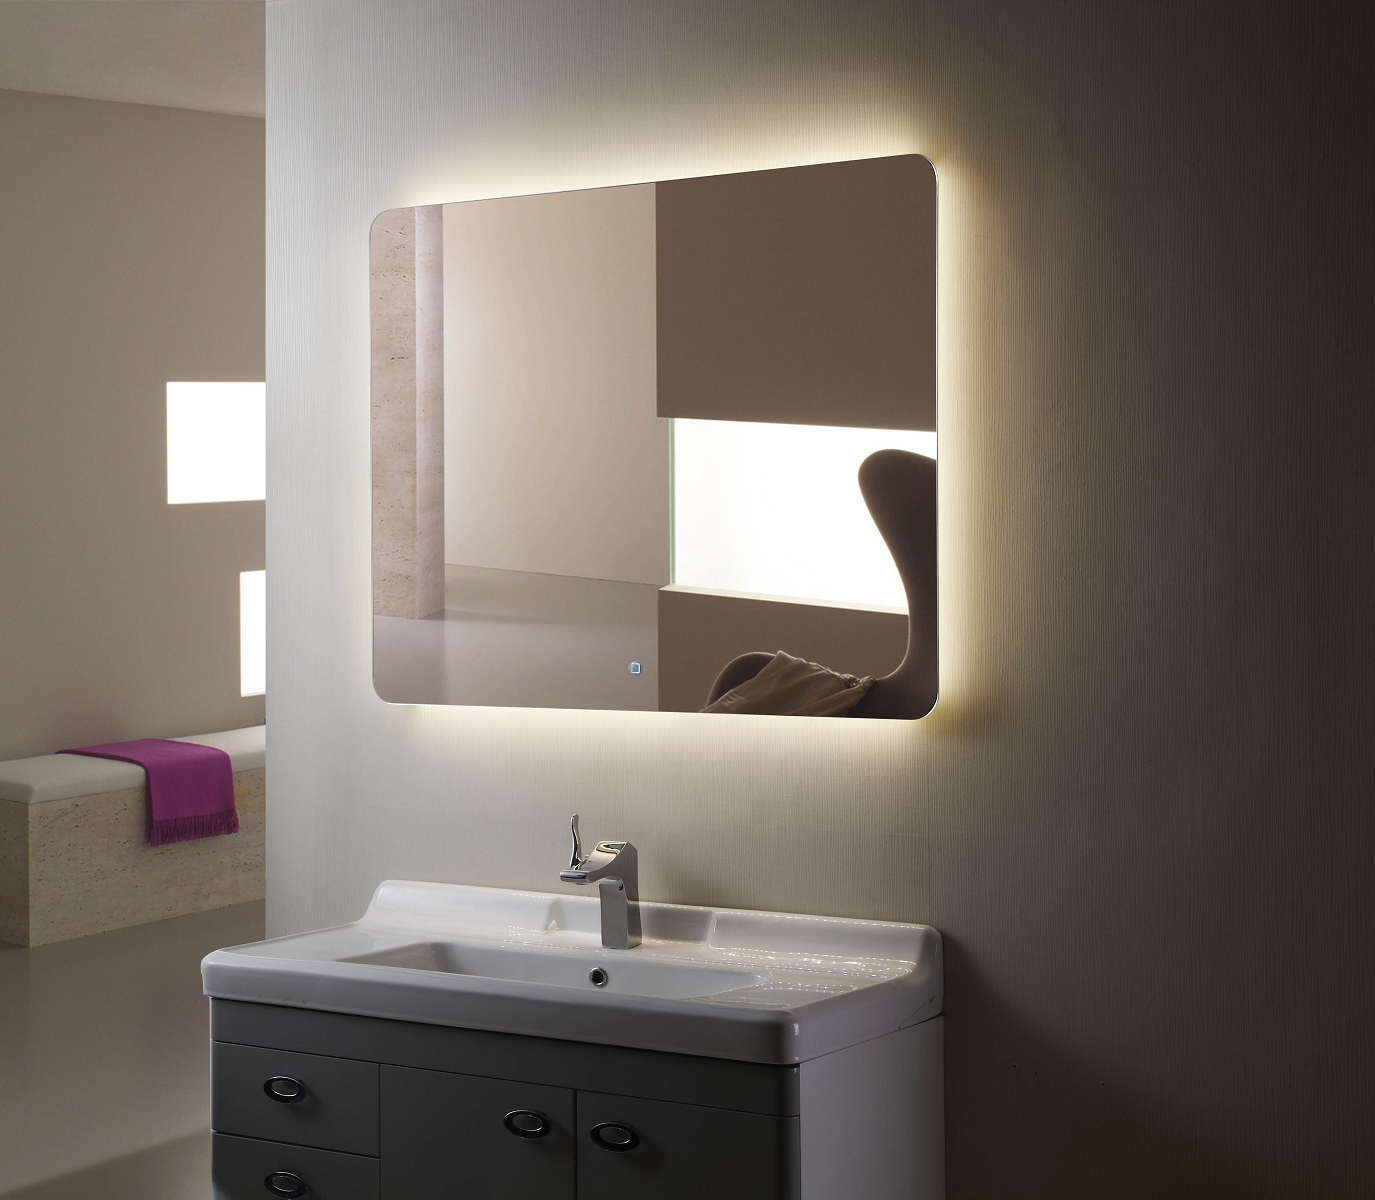 Widely Used Backlit Mirror Led Bathroom Mirror Montana Iii Inside Backlit Wall Mirrors (View 3 of 20)